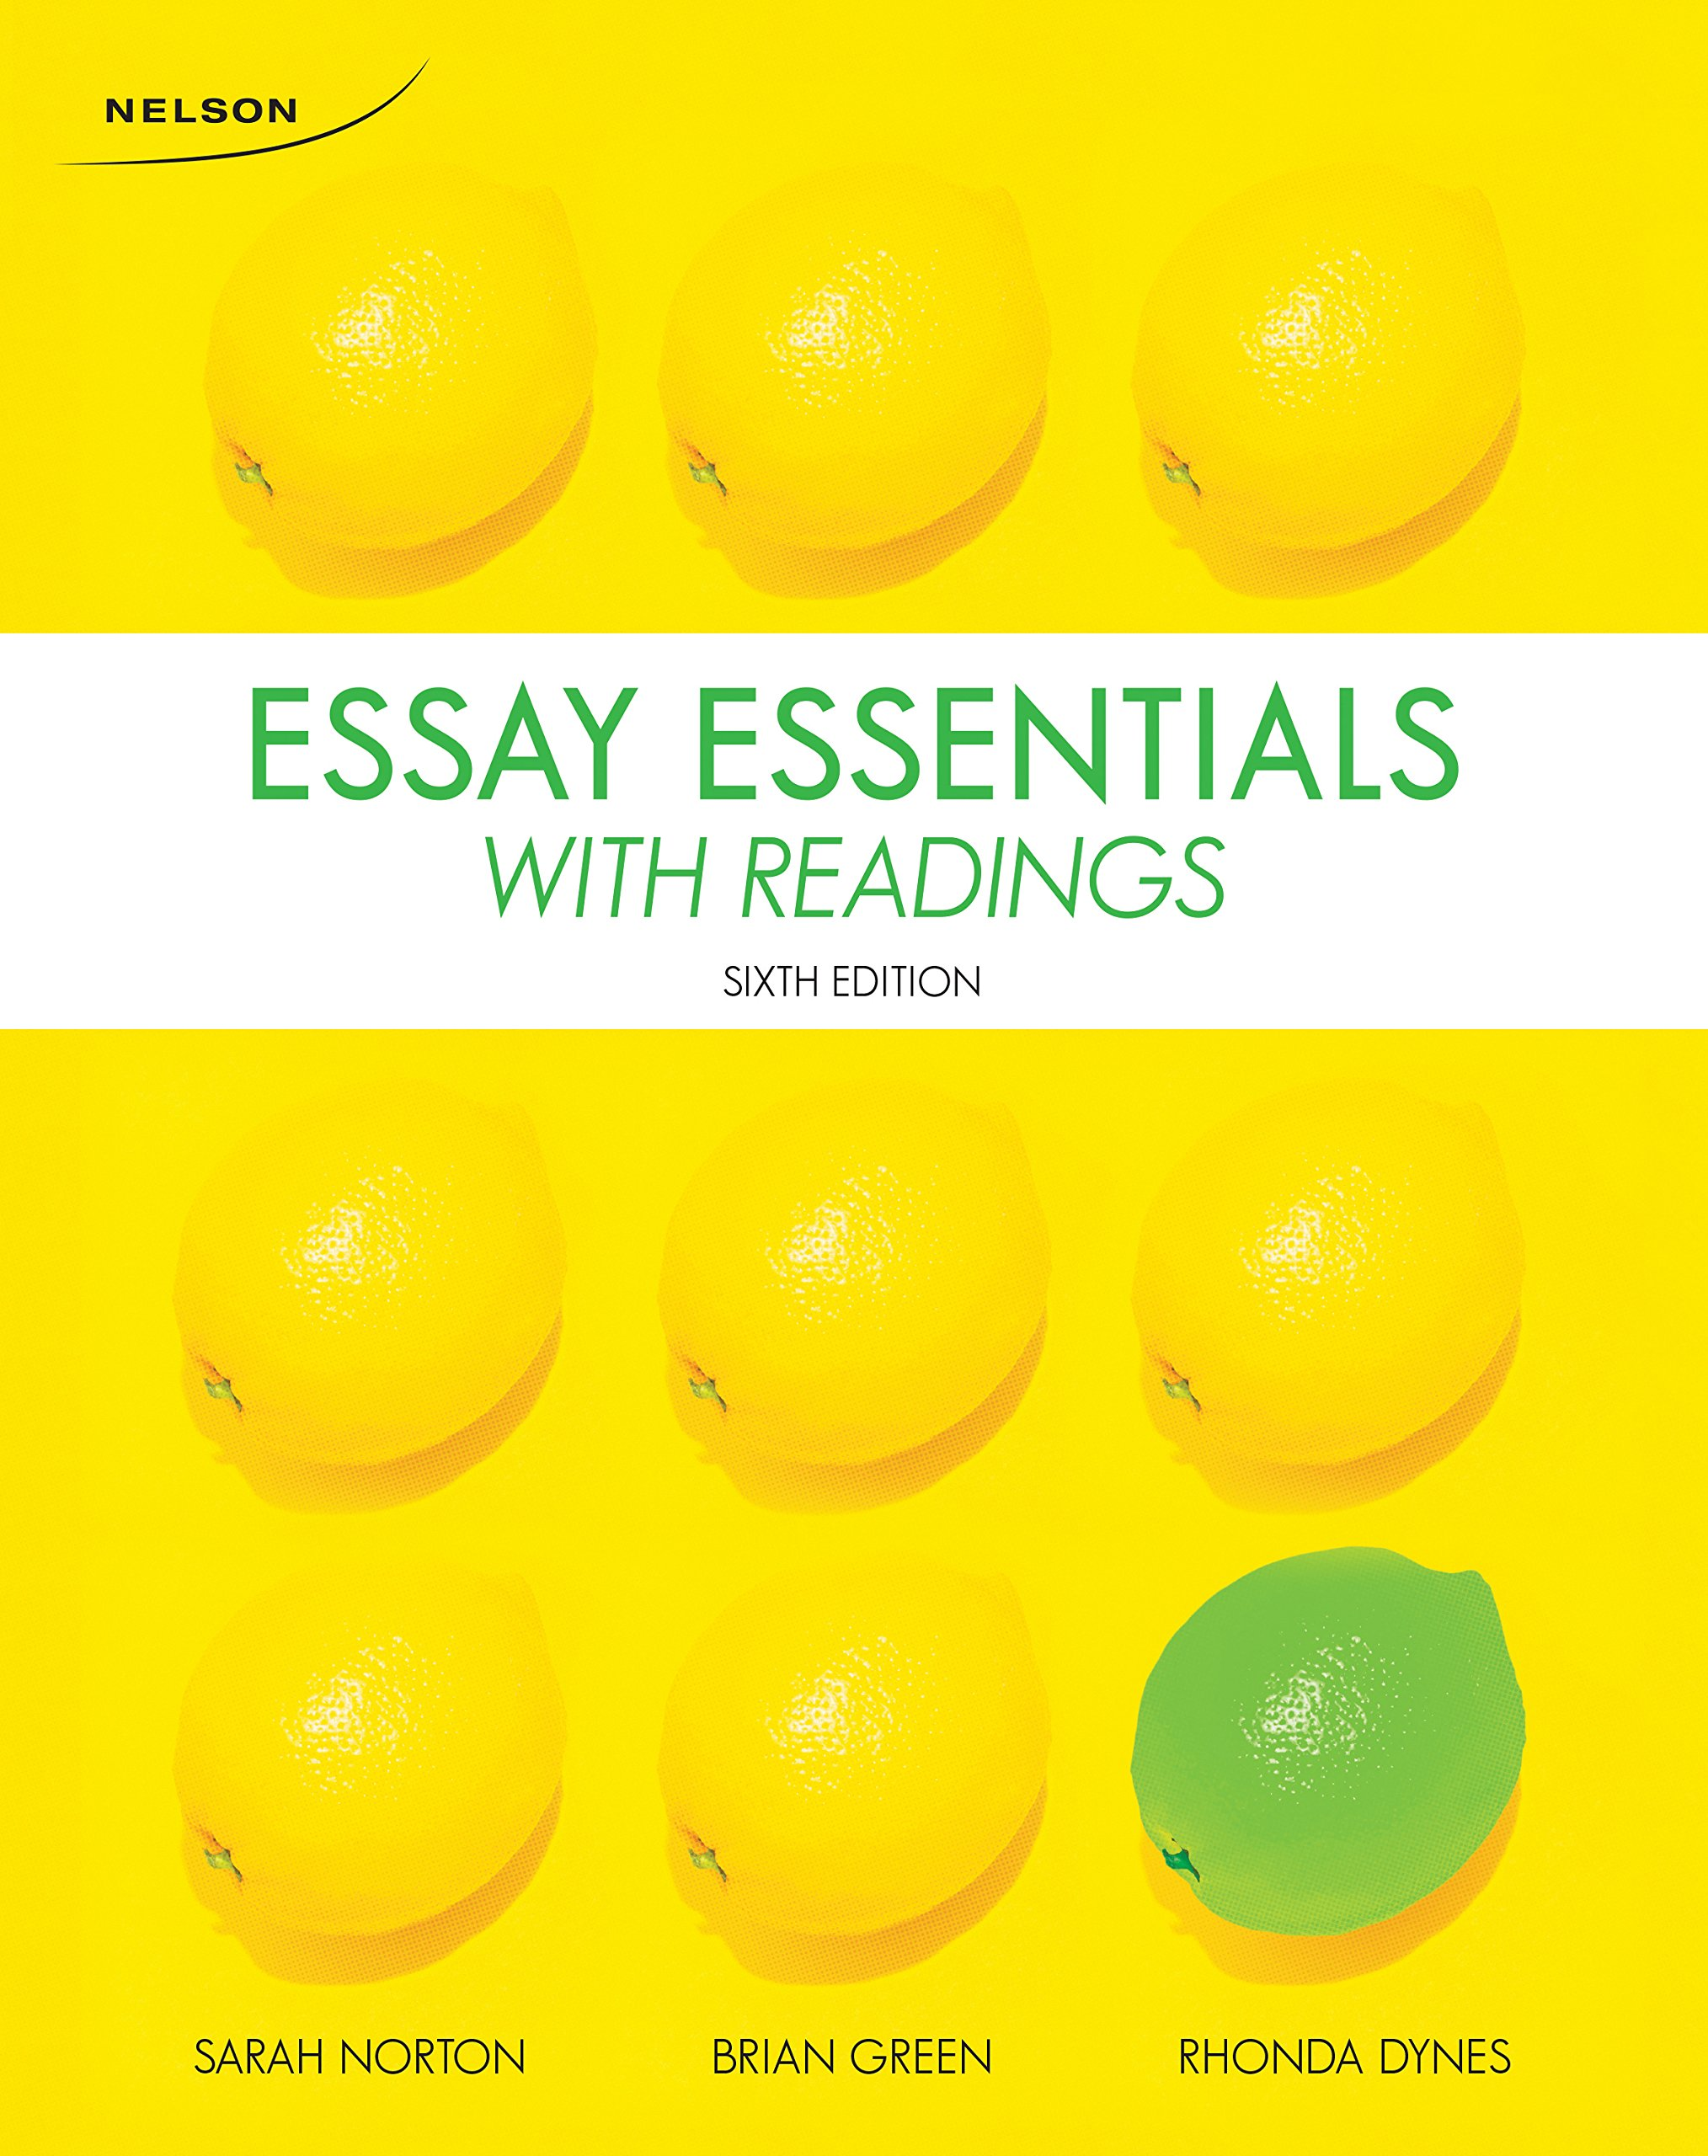 006 Essay Example Real Essays With Readings 5th Edition Wonderful Answer Key Online Ebook Full